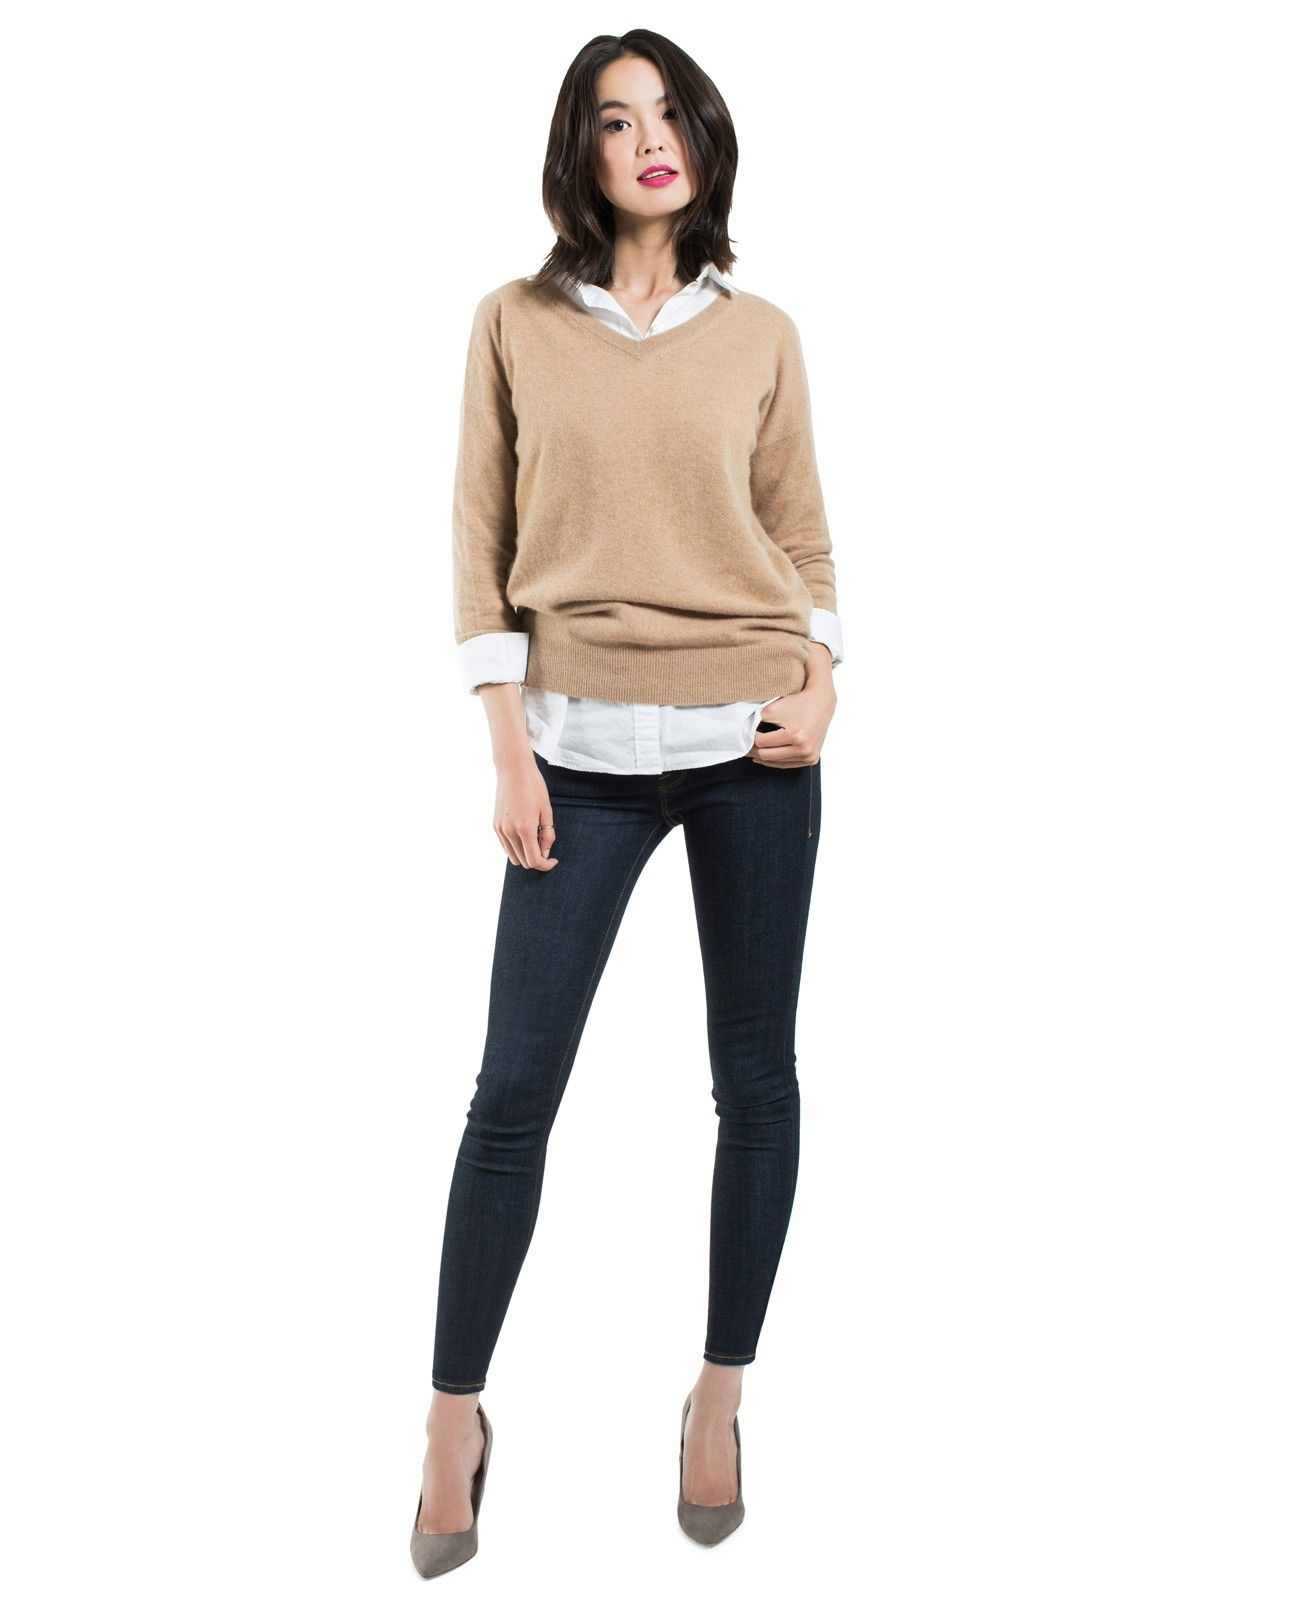 Women's Cashmere Boyfriend V-Neck Sweater - Sweaters - Top - WOMEN ...